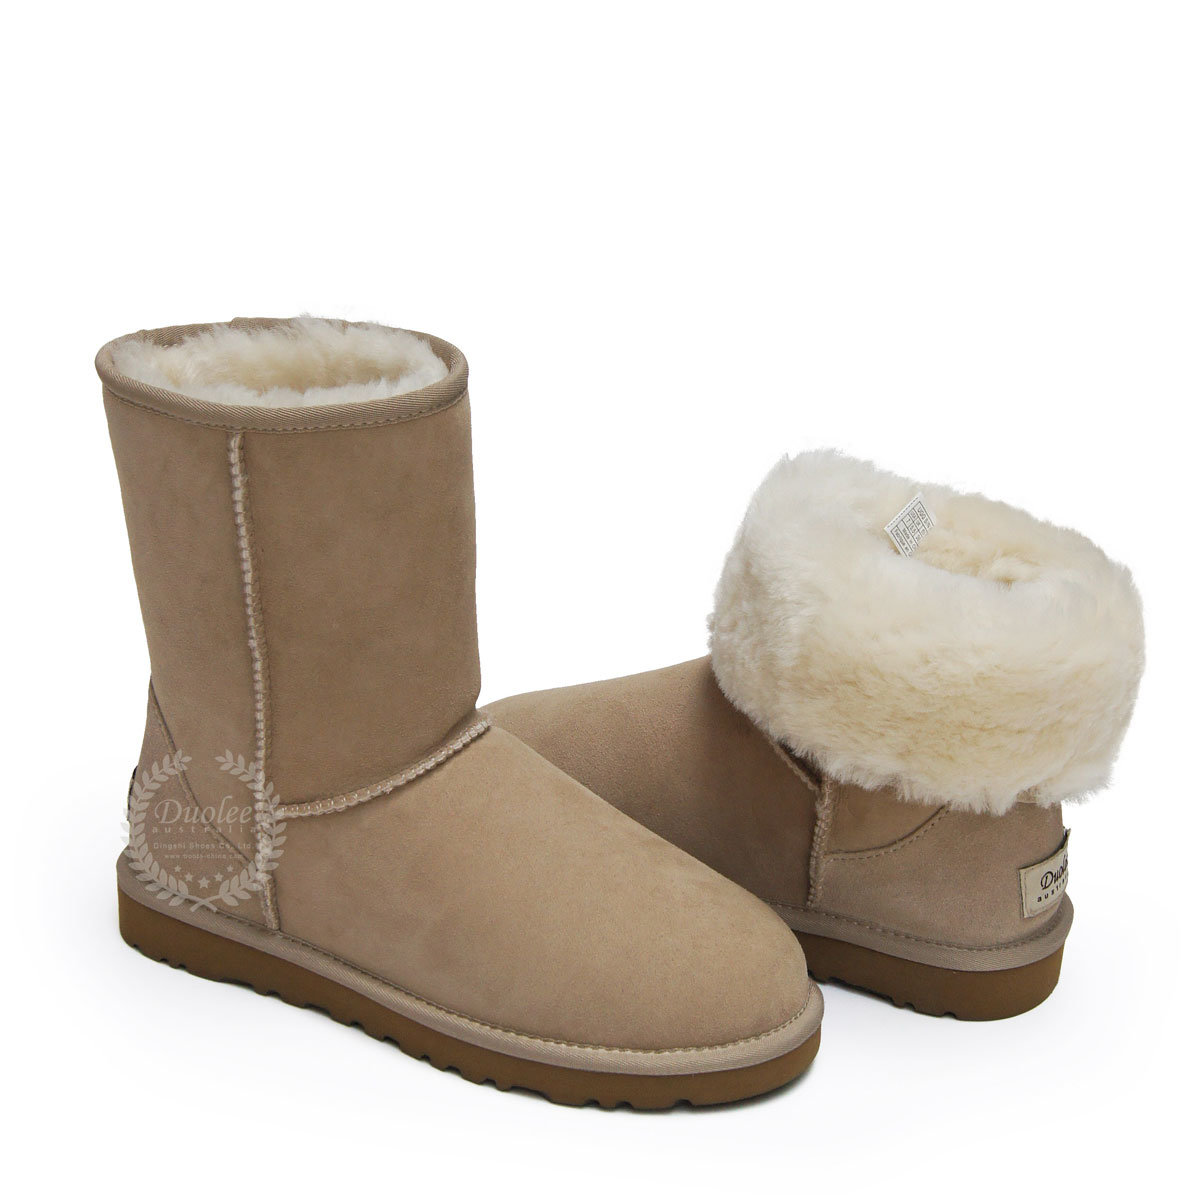 Innovative Women Winter Boots Warm Snow Boots Fashion Heels Ankle Boots For Women